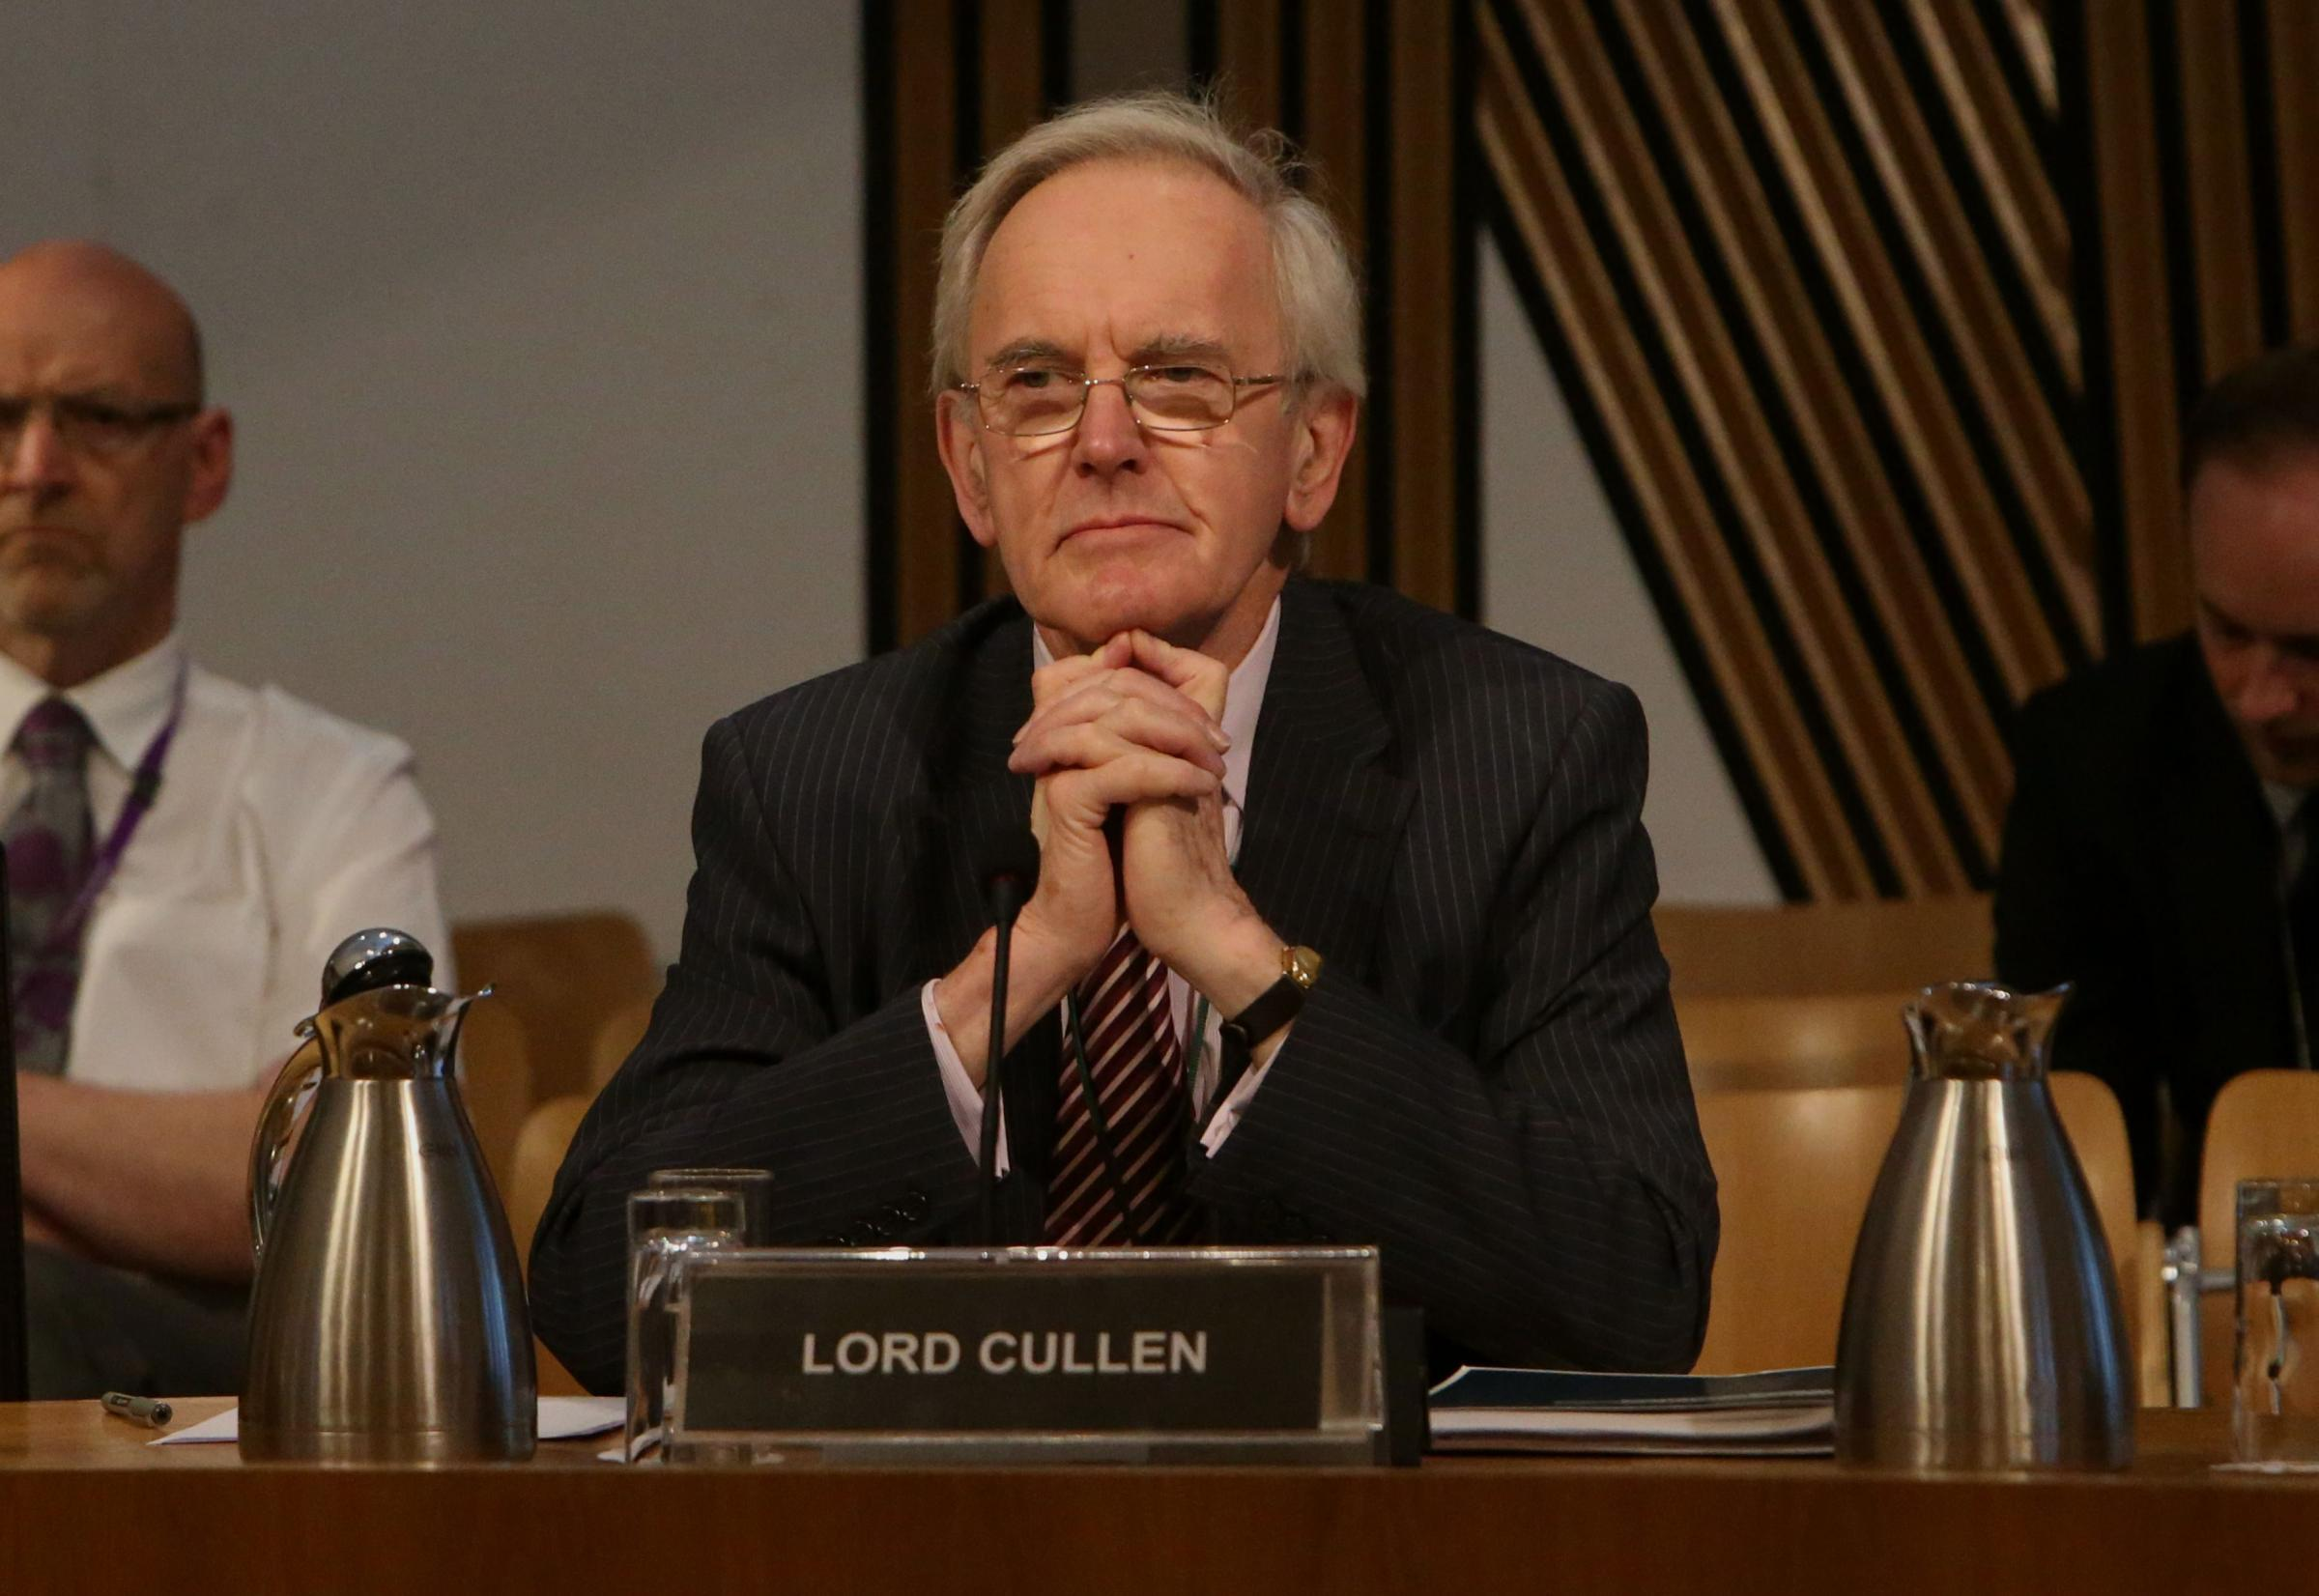 Lord Cullen to step down from his Abertay University role